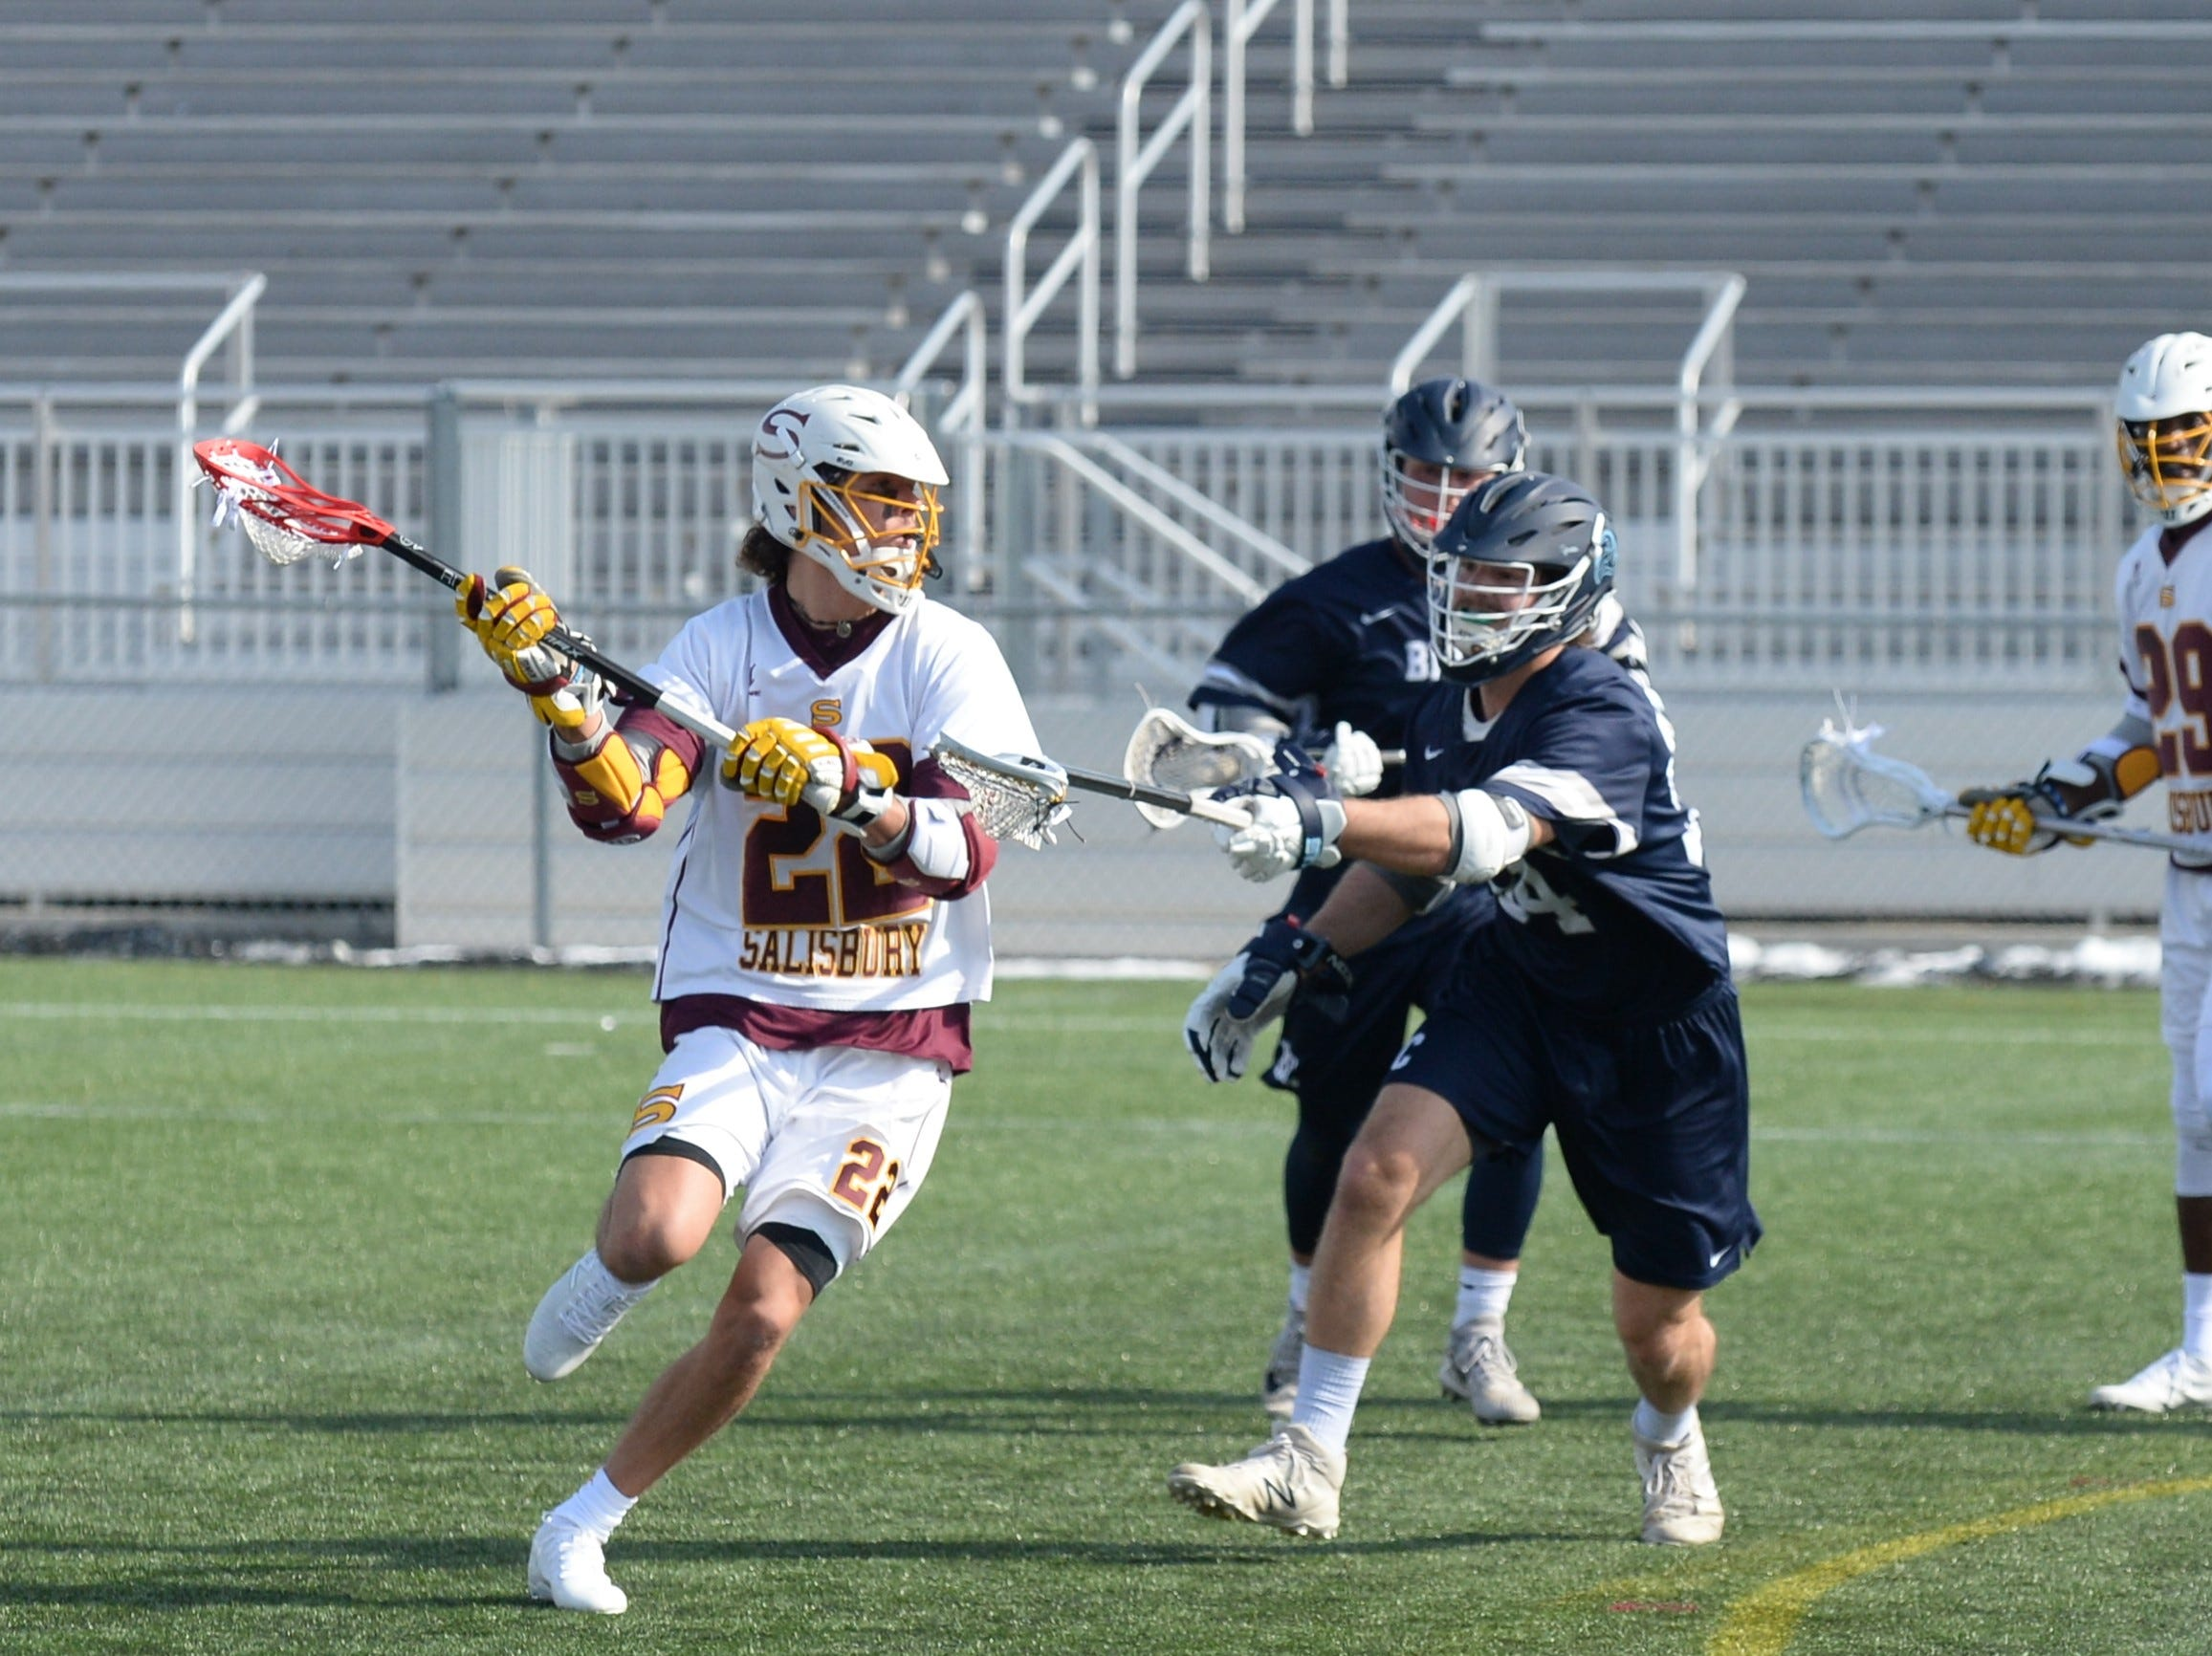 Salisbury University's Cross Ferrara looks for a shot against Berry College on Sunday, Feb. 3, 2019.